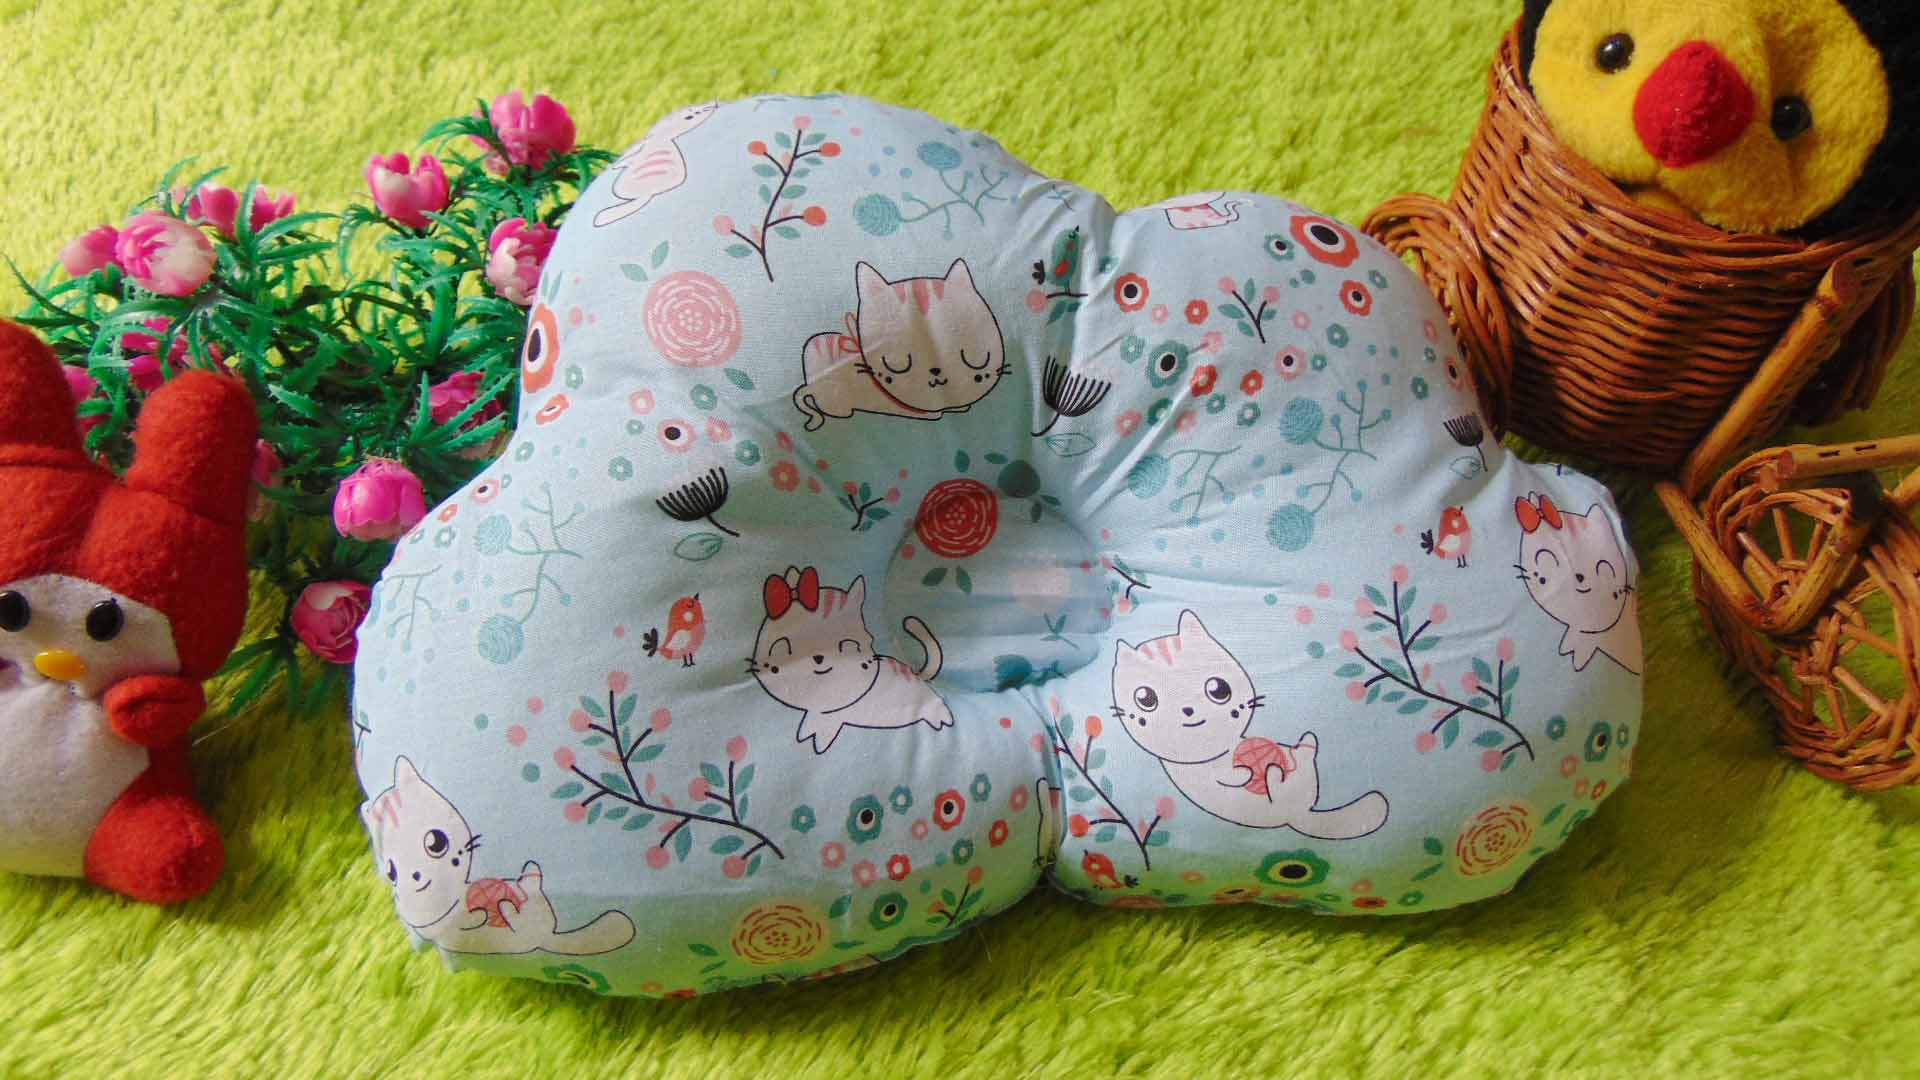 kado bayi bantal peang peyang bantal awan cloud pillow motif kucing biru